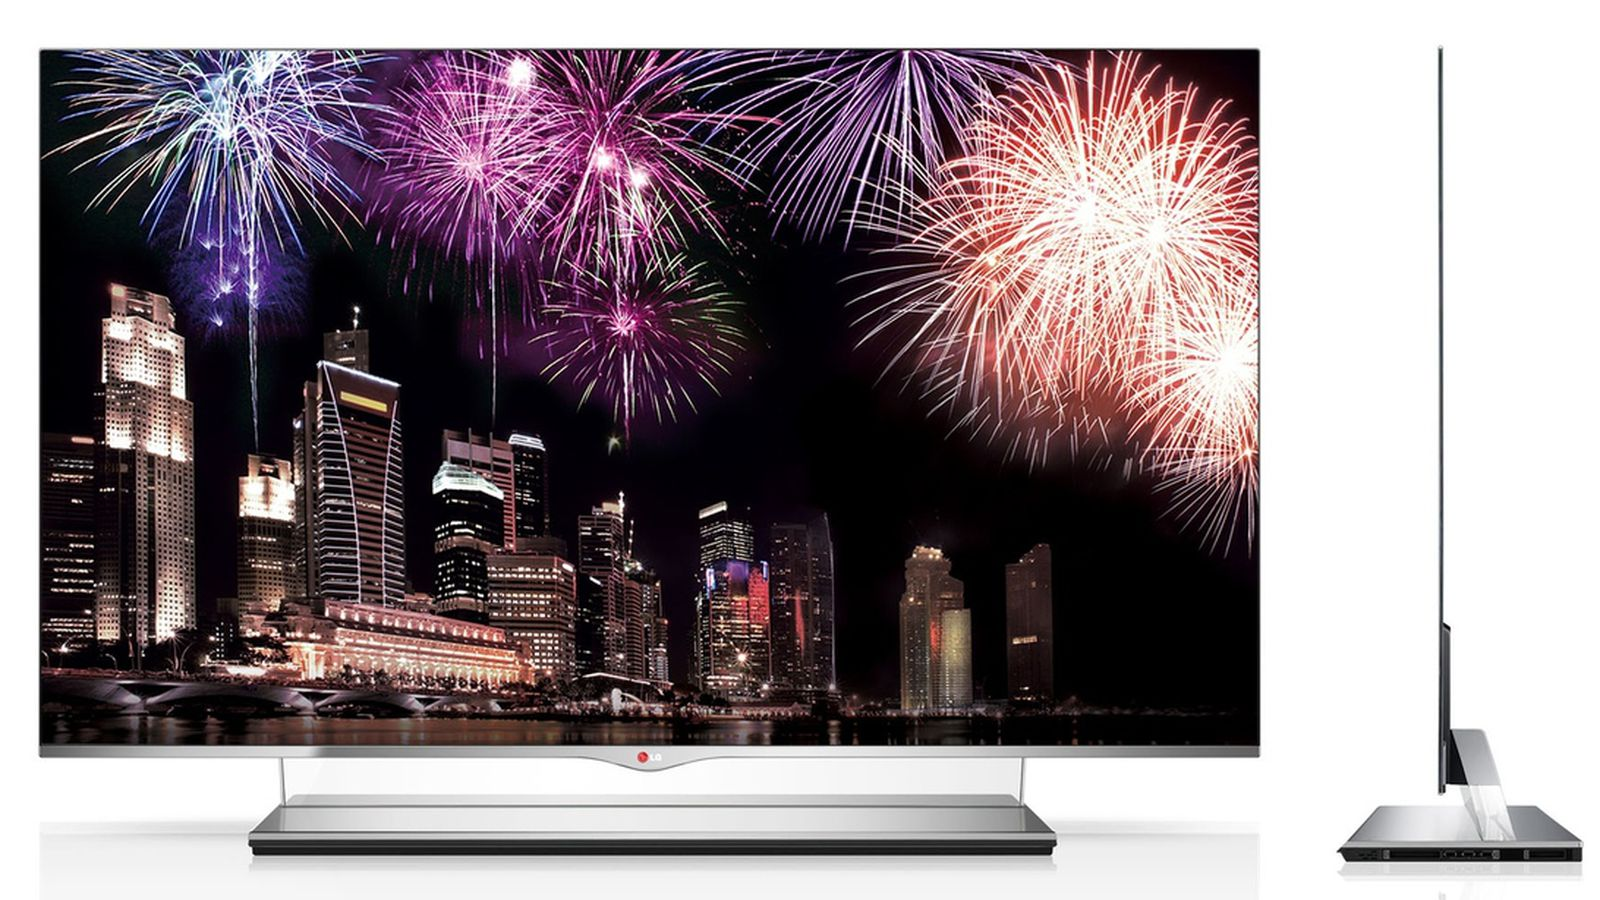 lg finally puts 55 inch oled television on sale in korea pre orders ship february for 10 000. Black Bedroom Furniture Sets. Home Design Ideas